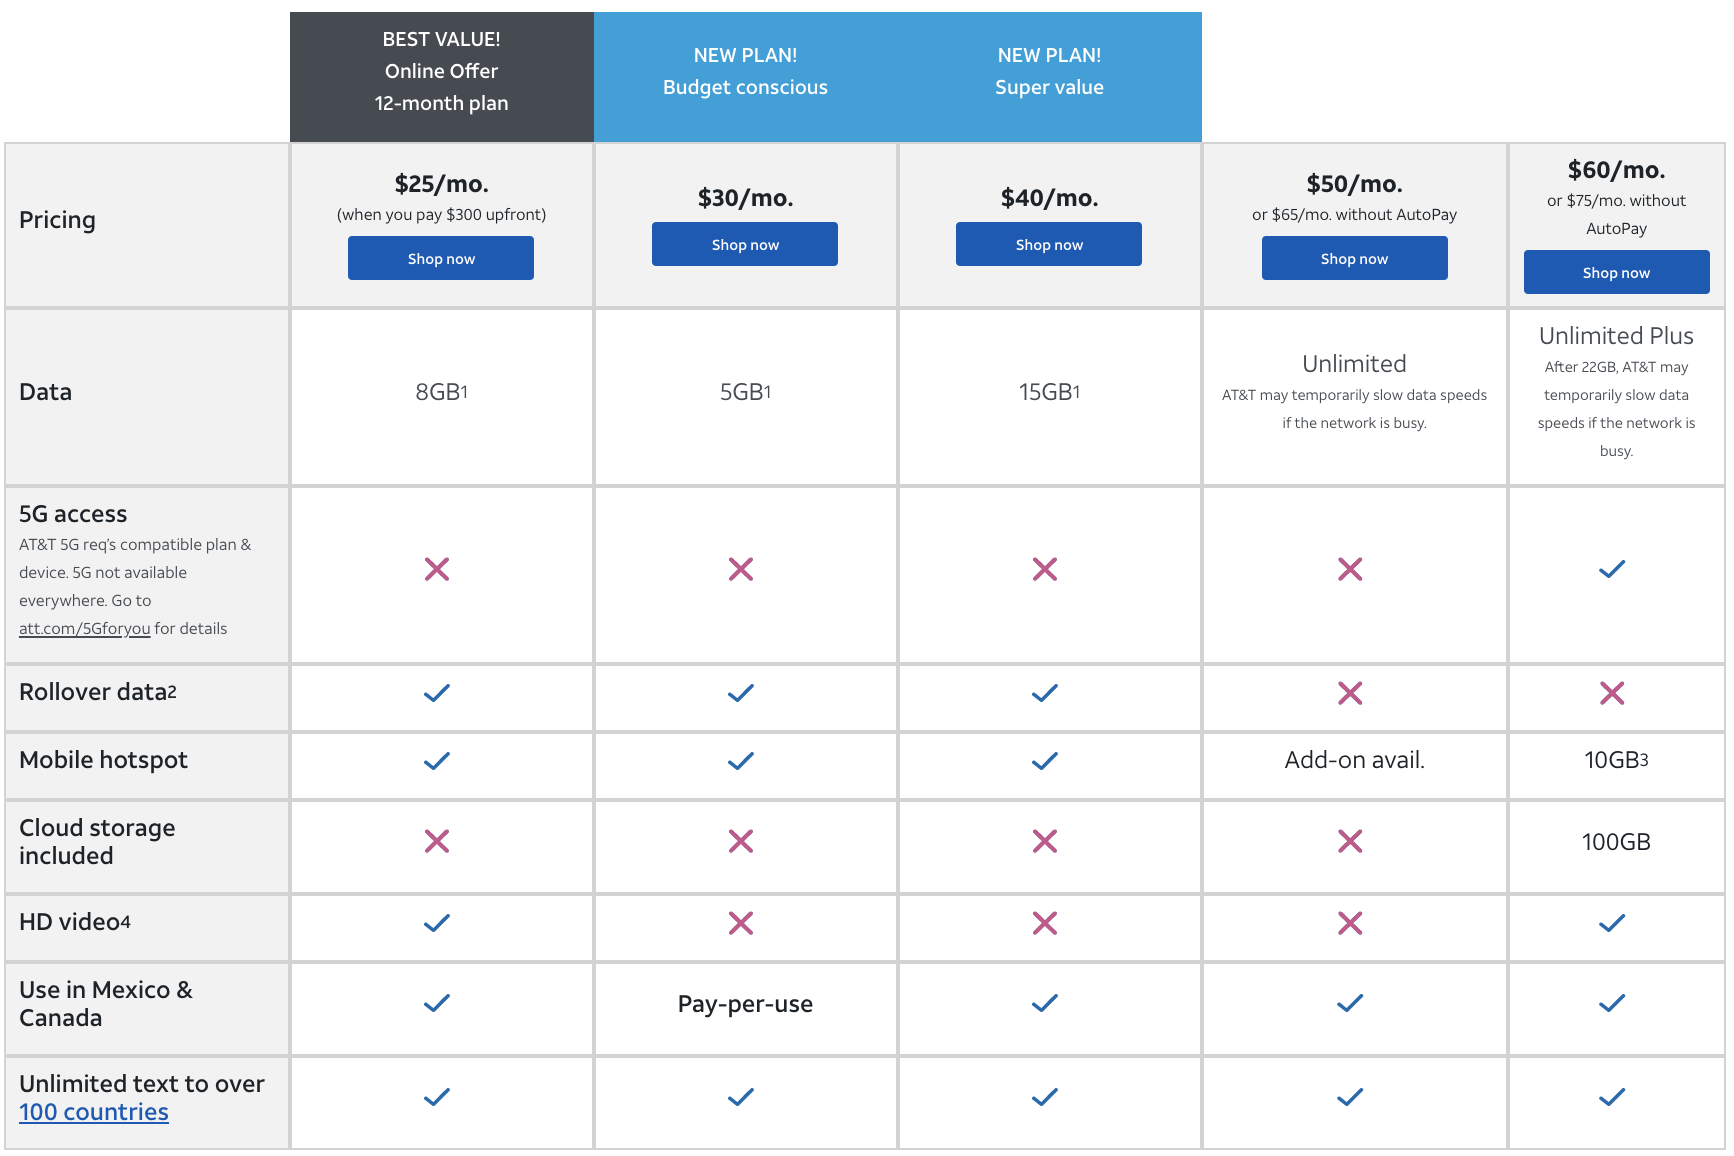 AT&T Prepaid lineup comparison chart from November 2020